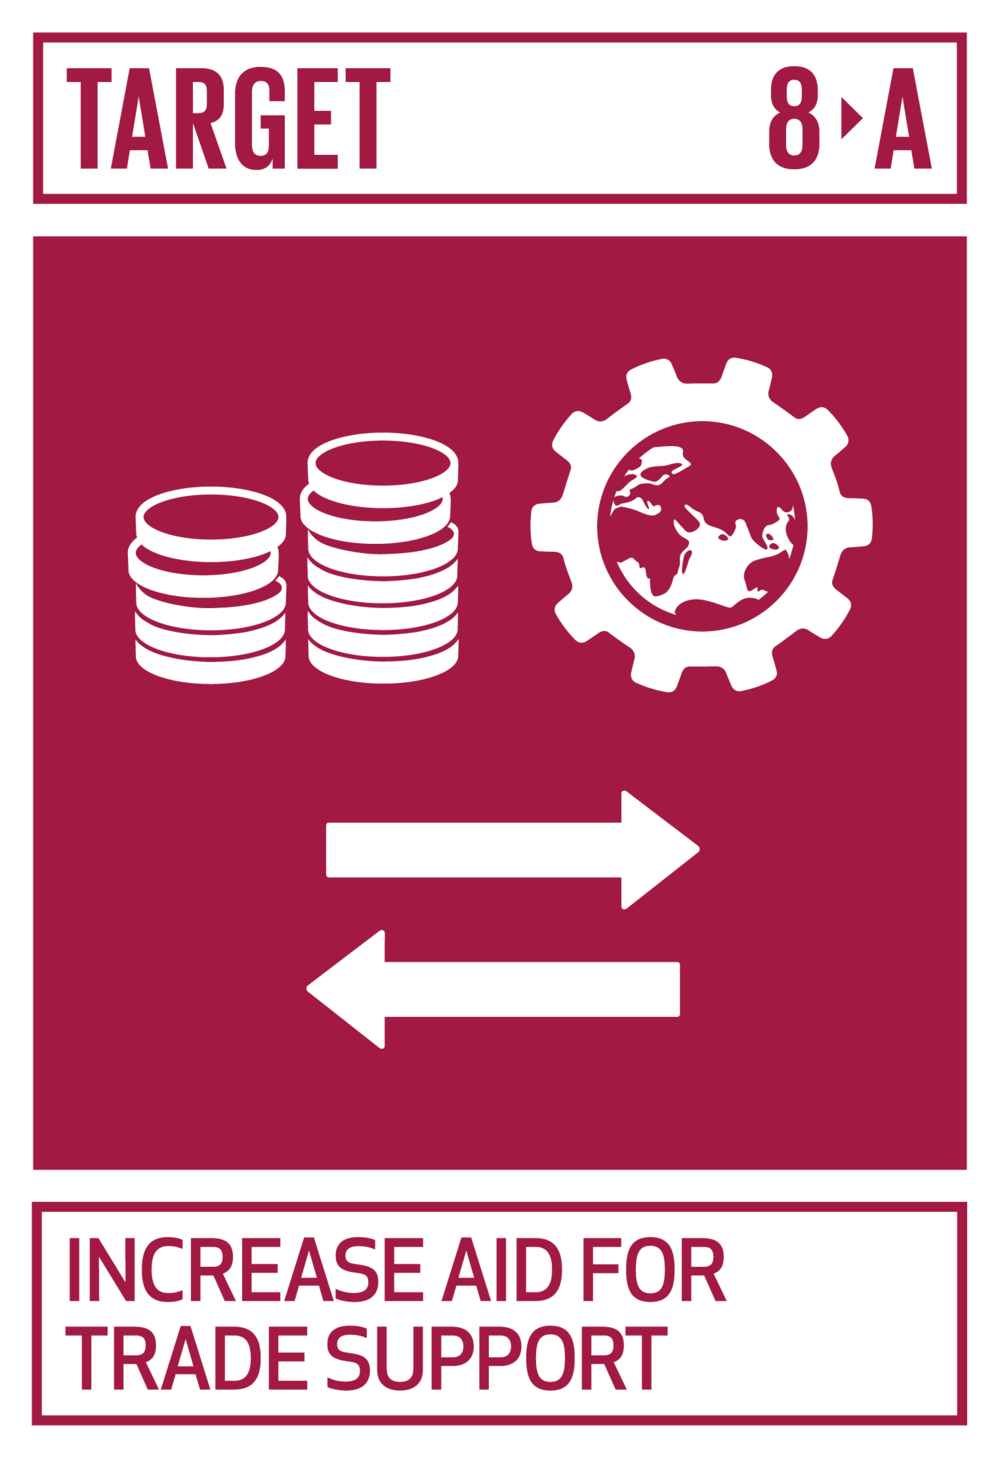 Increase Aid for Trade support for developing countries, in particular least developed countries, including through the Enhanced Integrated Framework for Trade-related Technical Assistance to Least Developed Countries.   INDICATOR    8.a.1  Aid for Trade commitments and disbursements